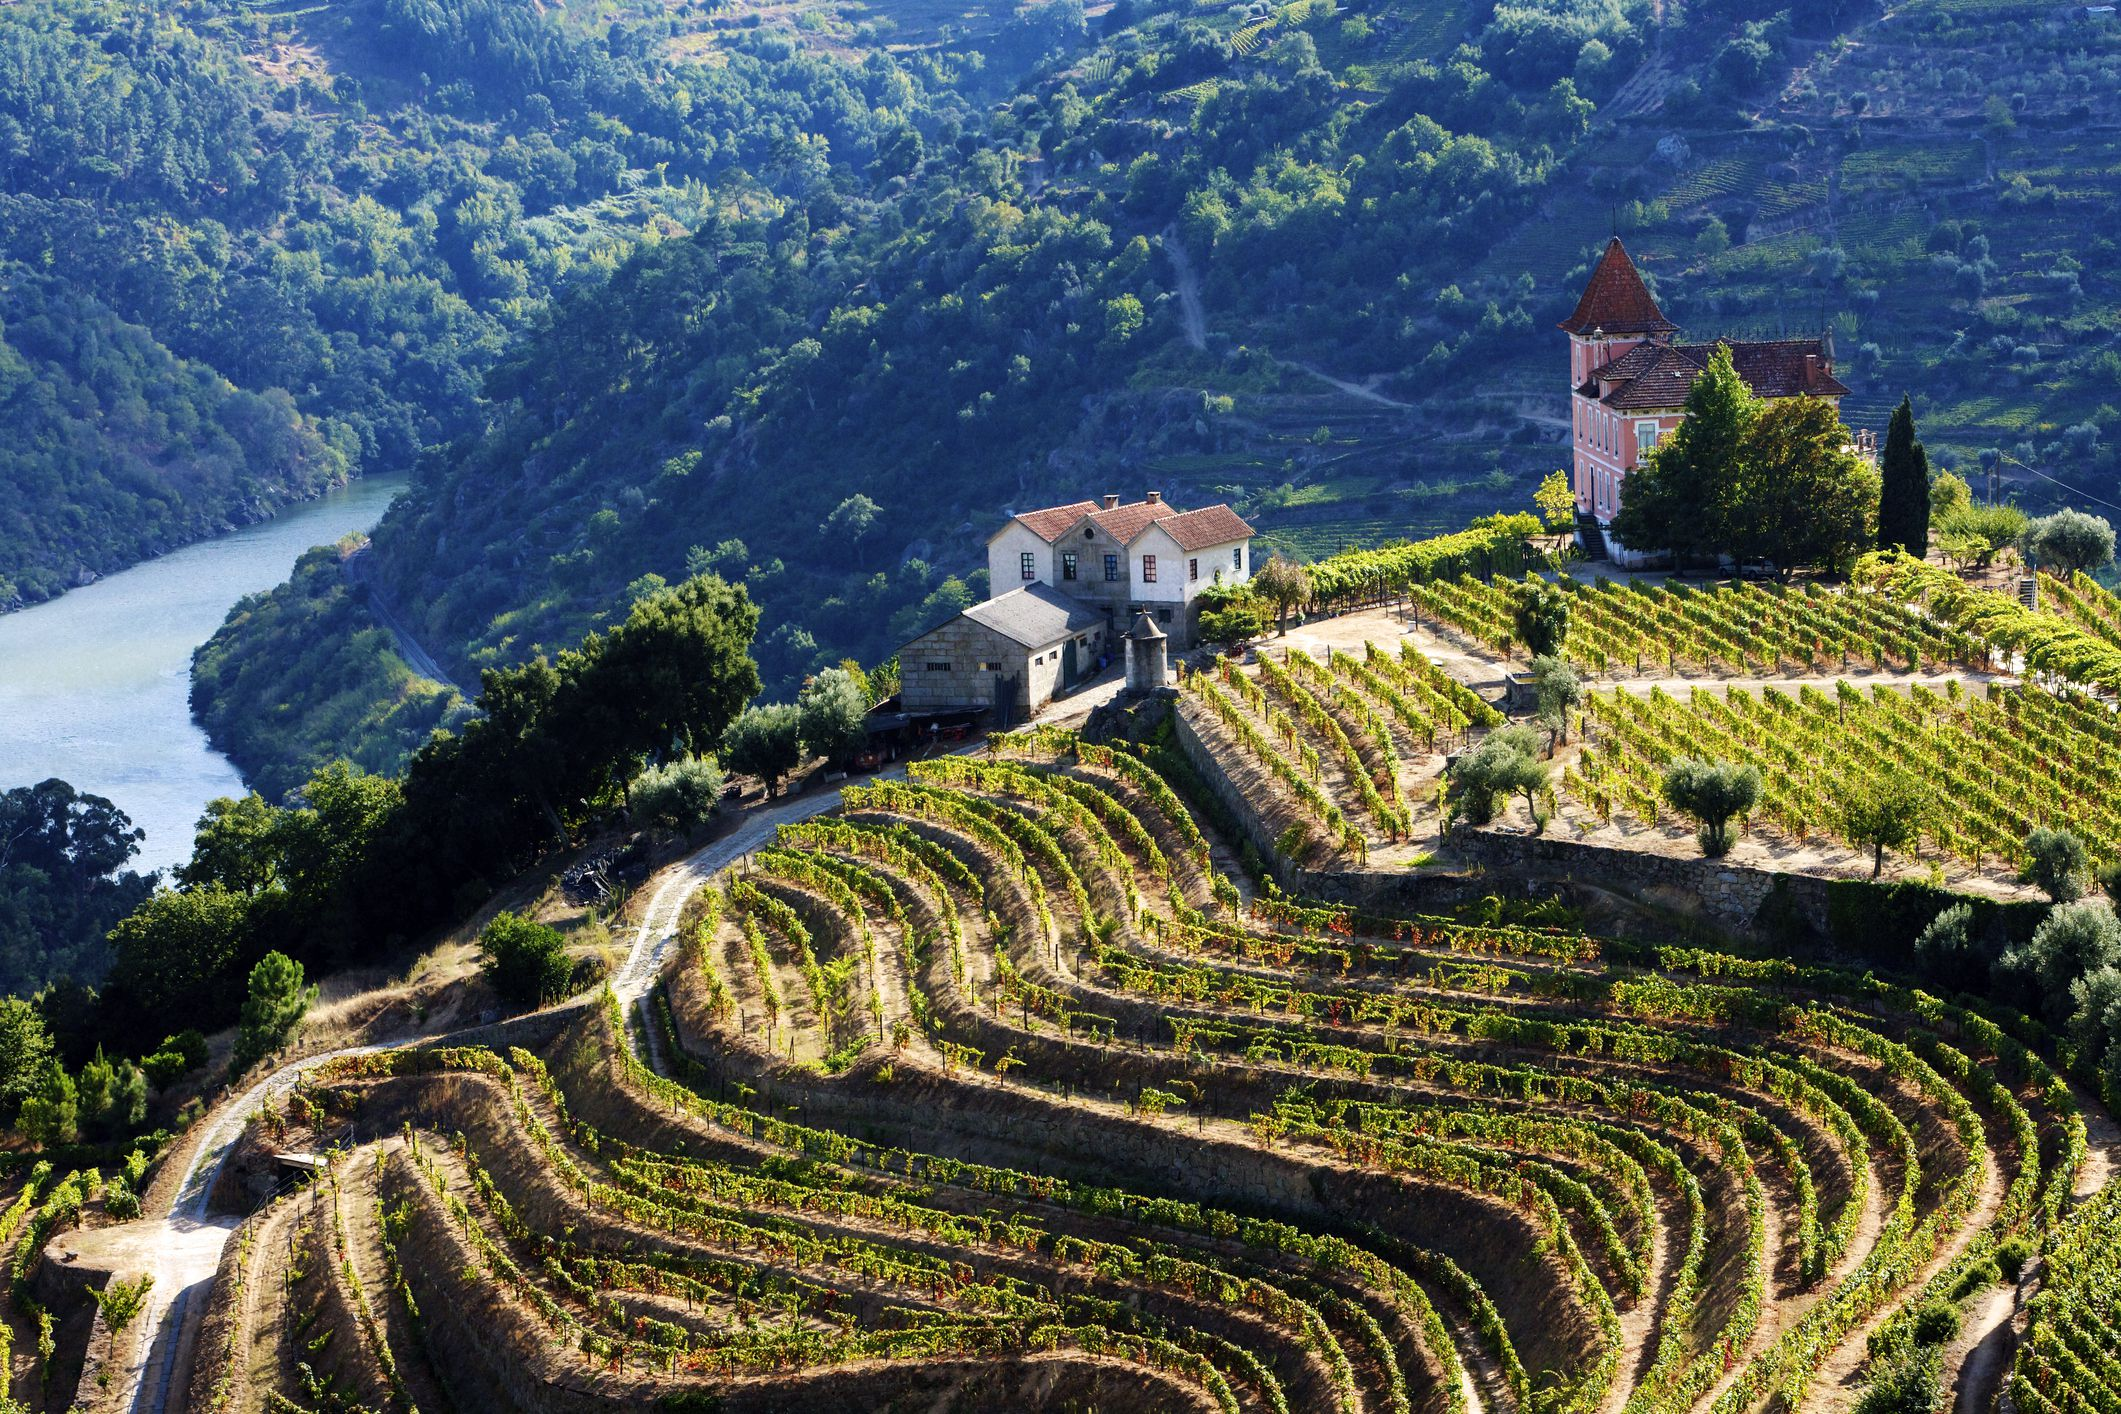 Terraced vineyards of Douro River Valley